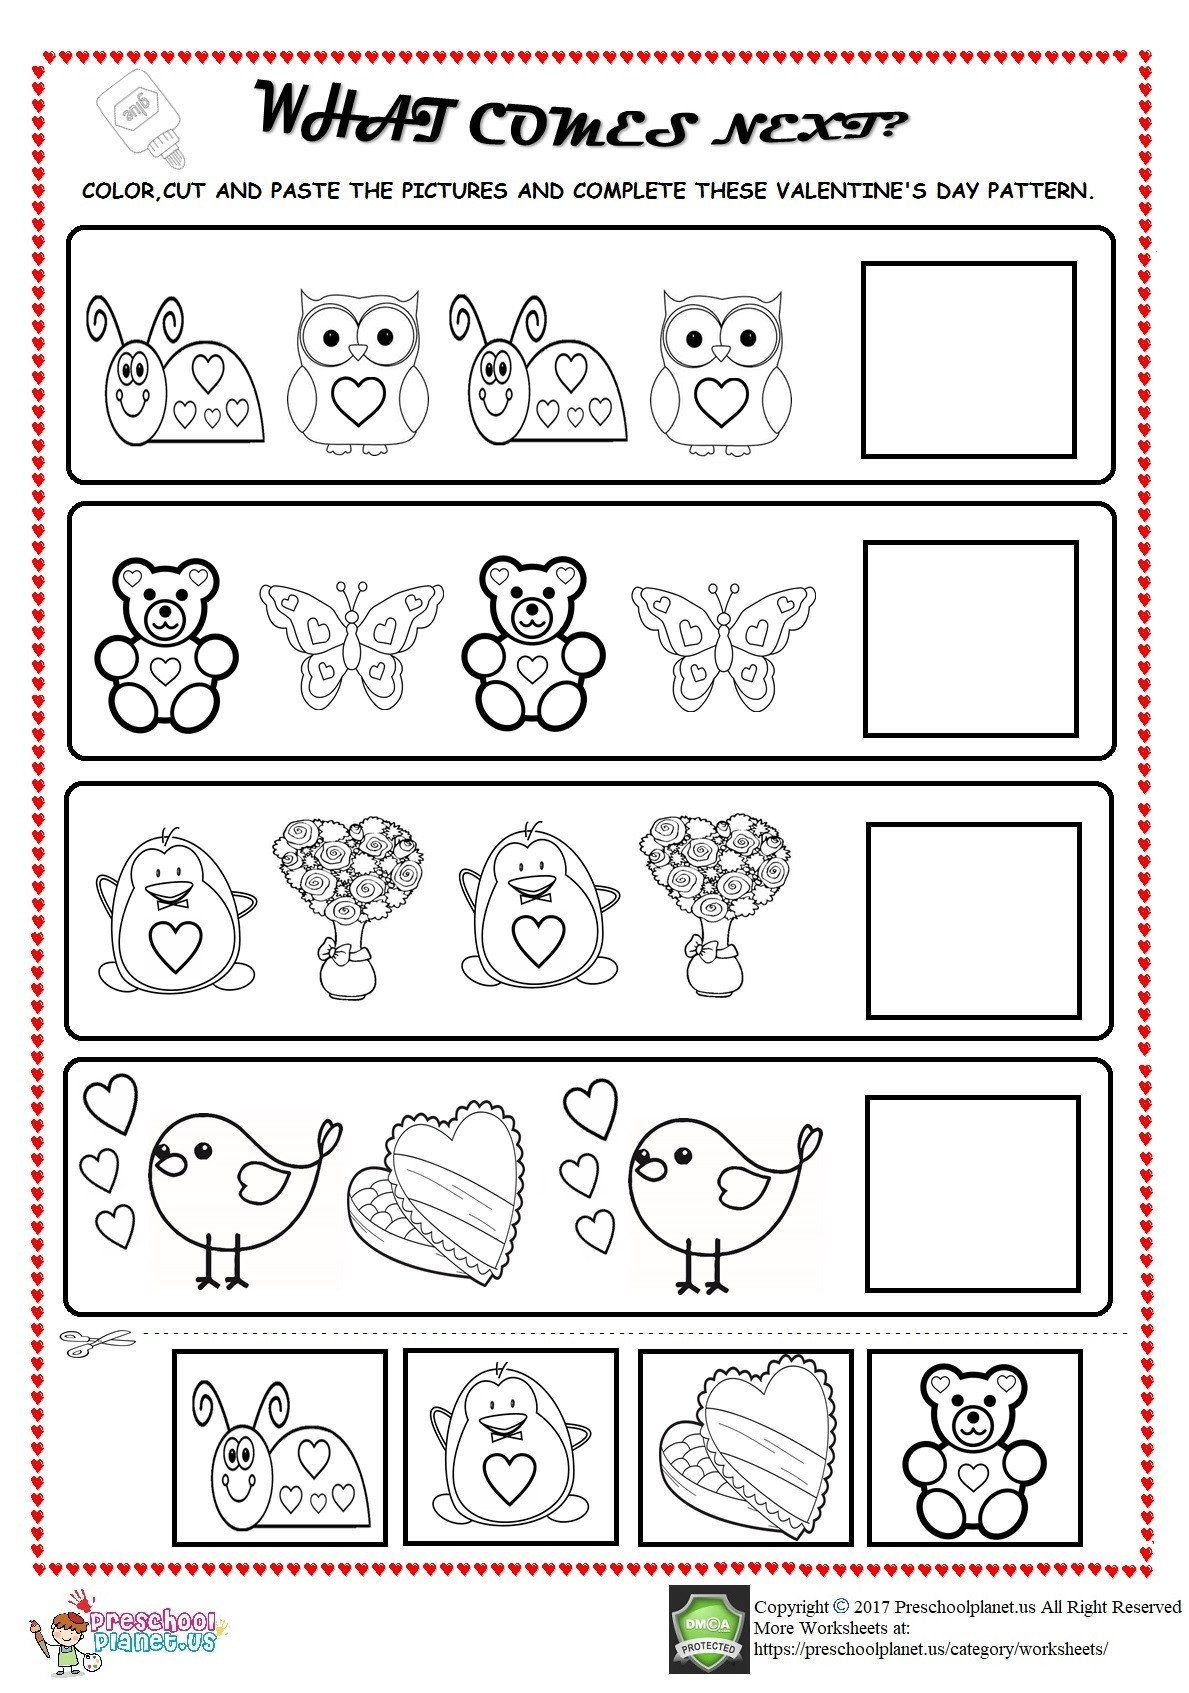 Valentines Day Kindergarten Worksheets Valentine S Day Pattern Worksheet for Kids – Preschoolplanet